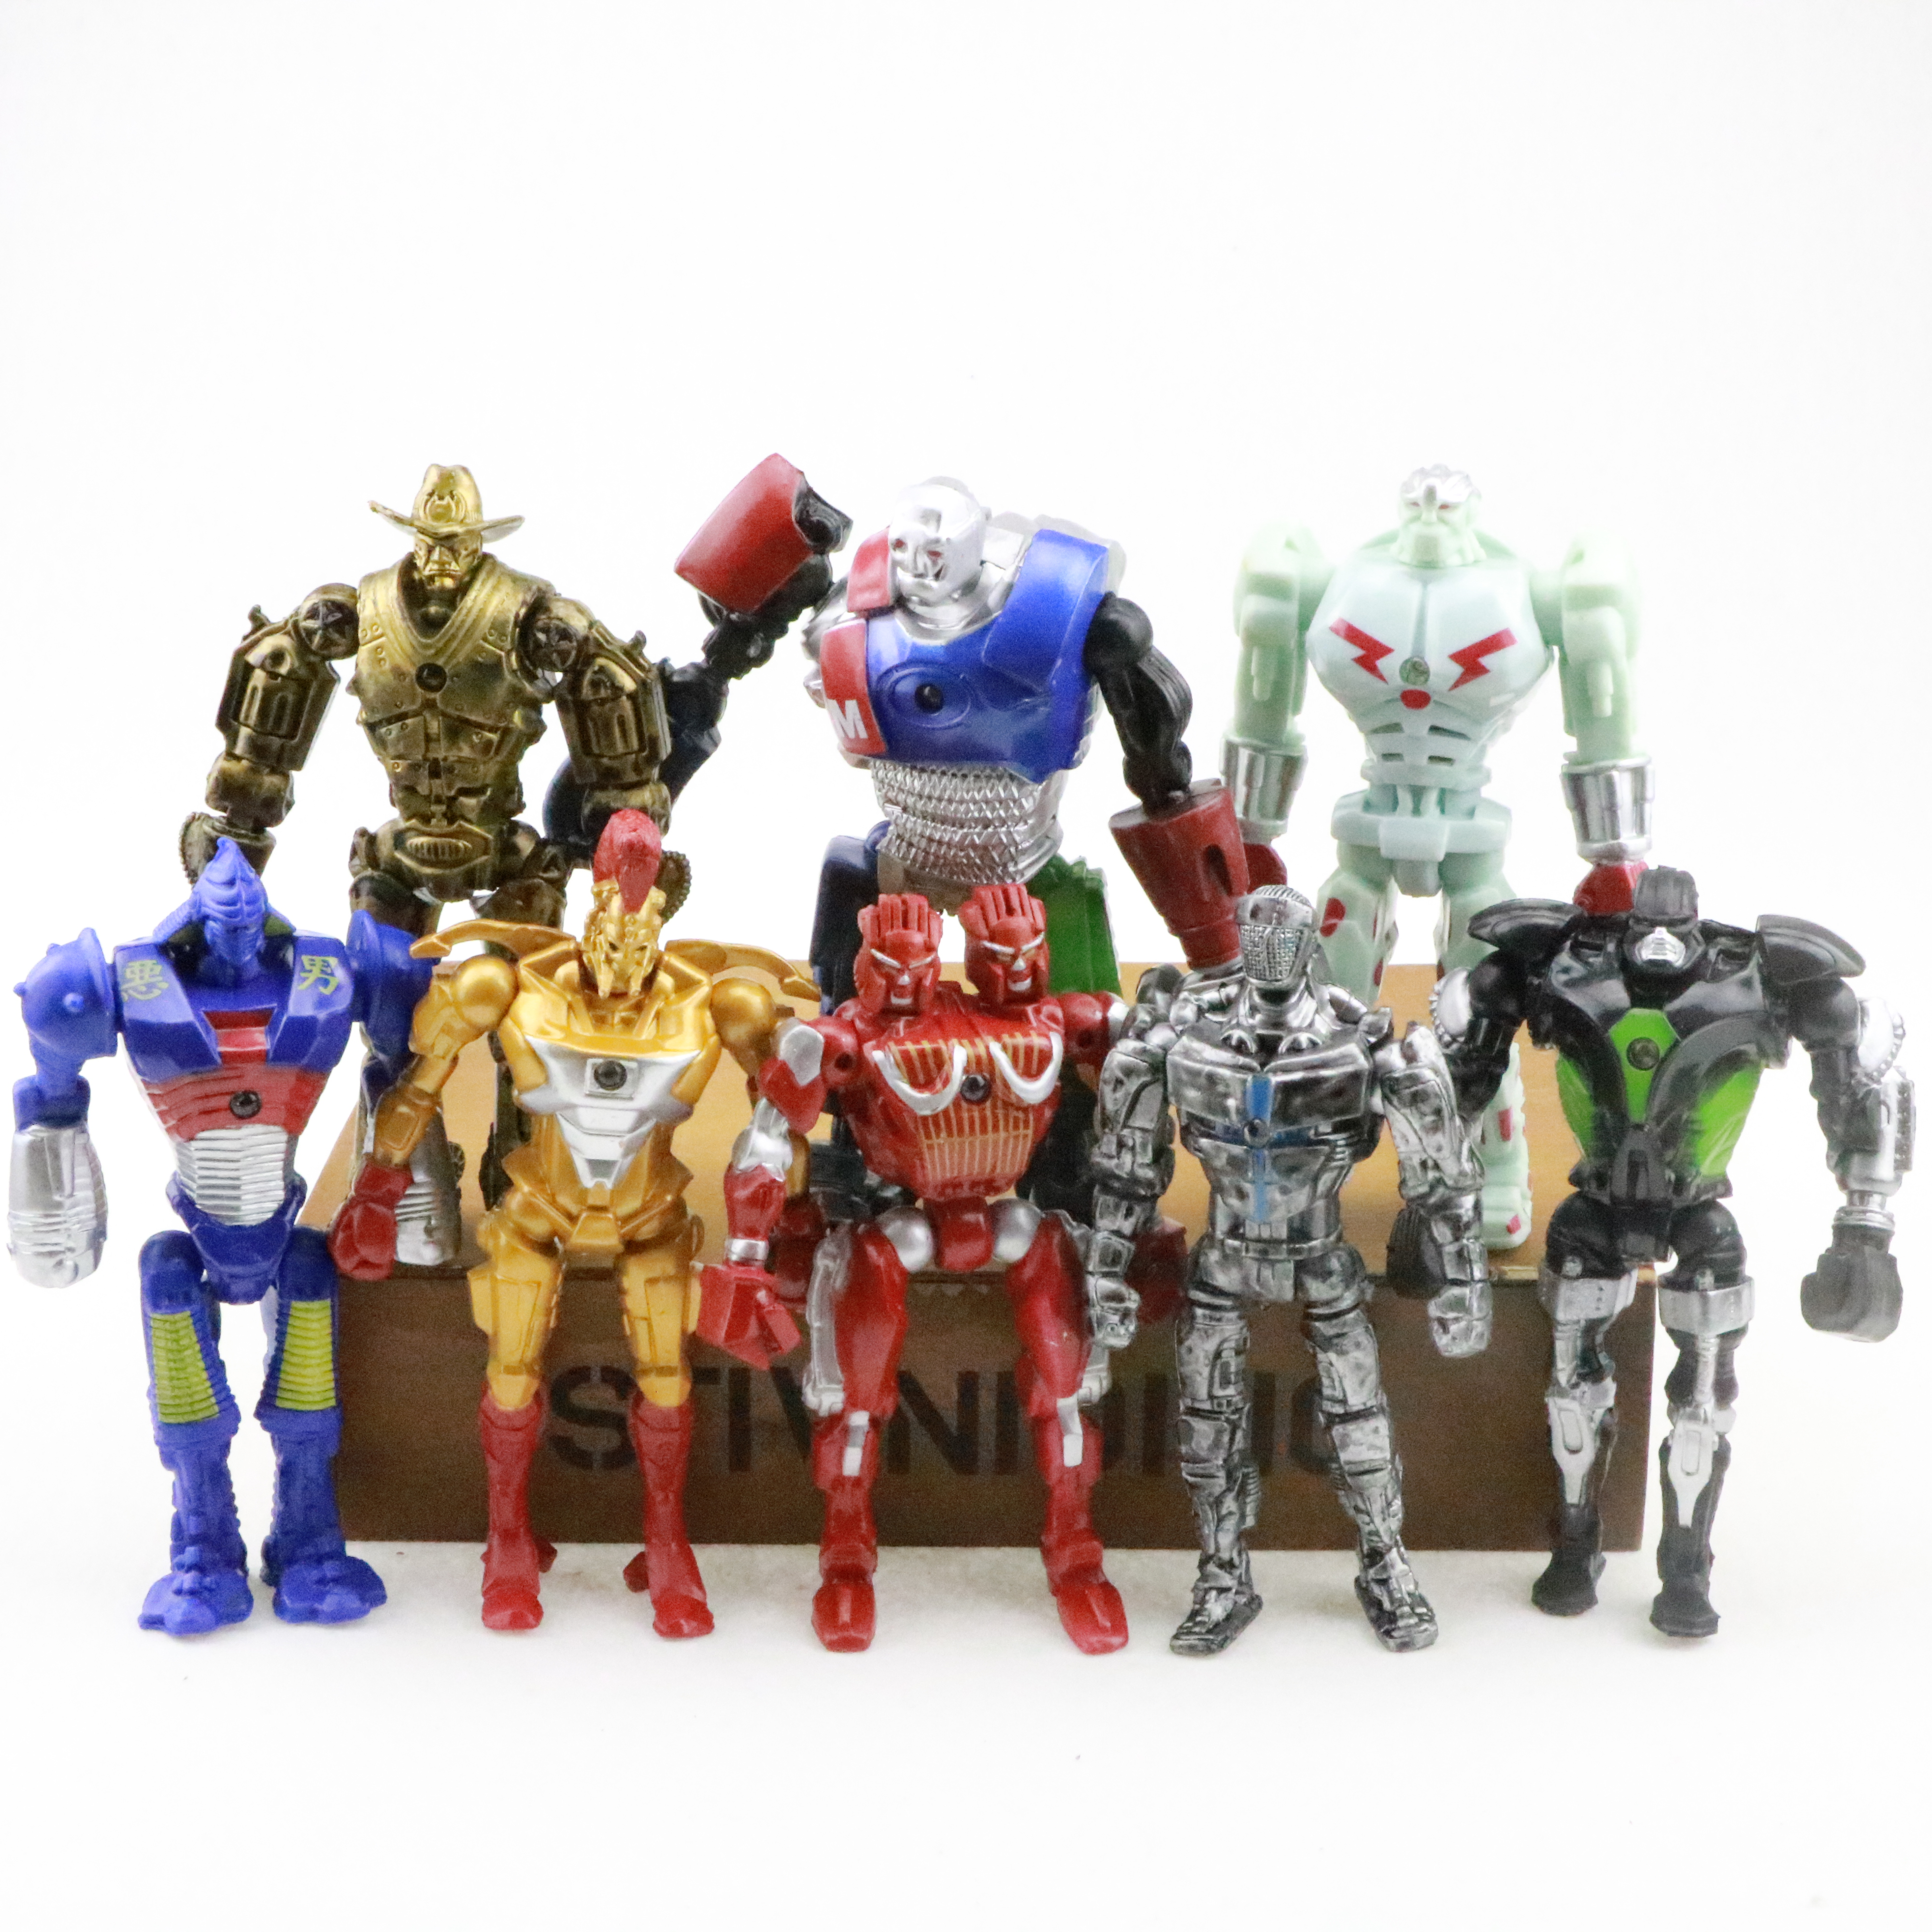 8pcs/set Movie Real Steel Zeus Atom Midas Adam Duracell Raider Action Figure PVC Collectible Model Toys Sets Kid Christmas Gifts